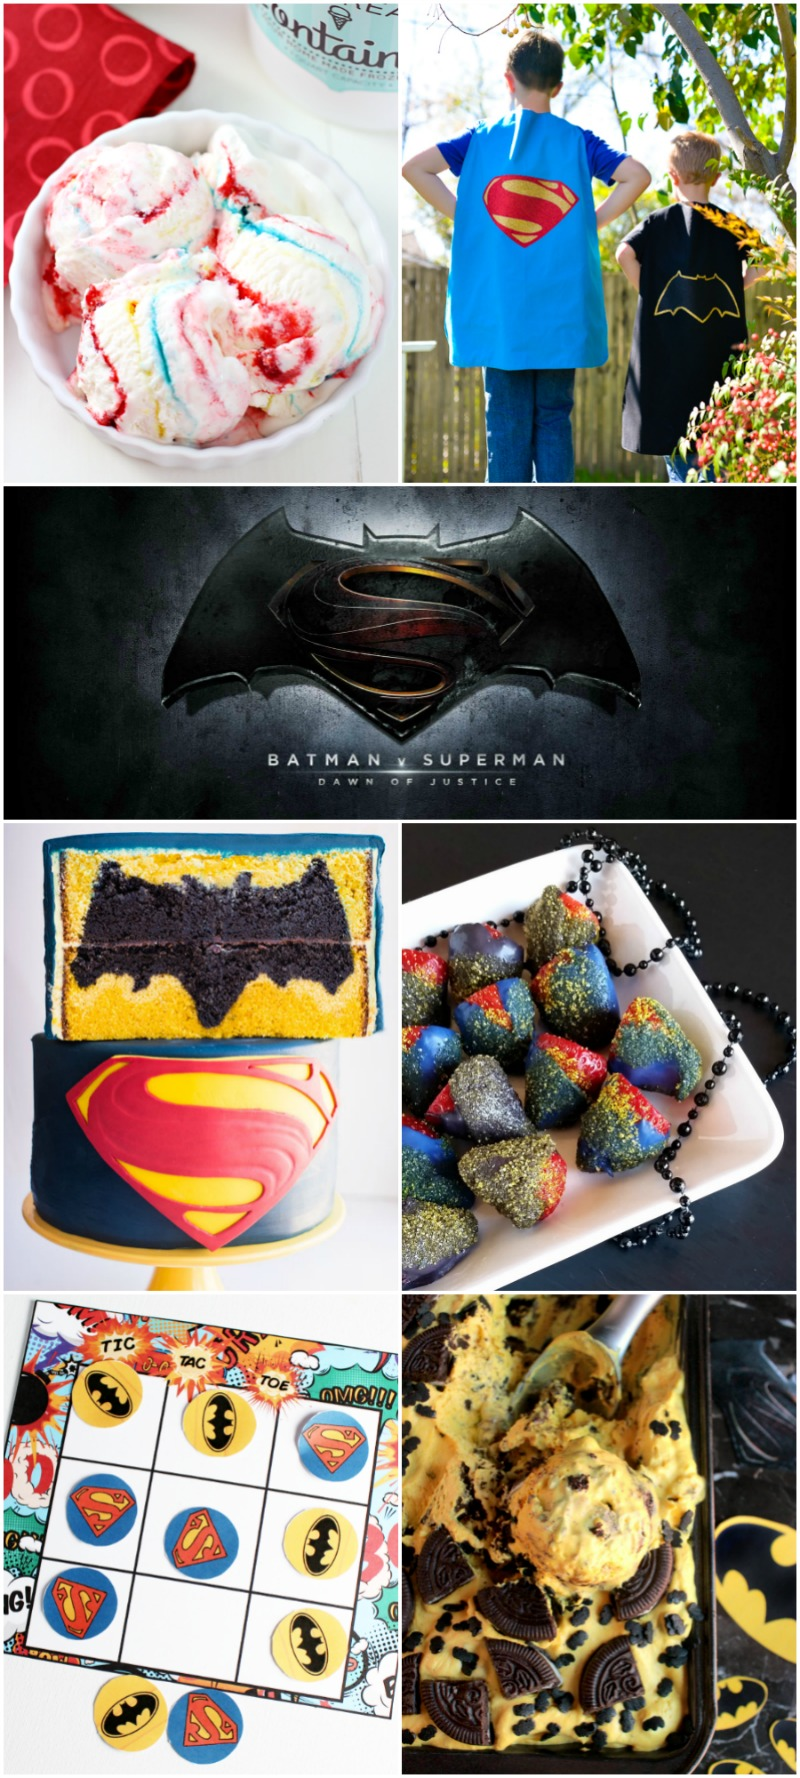 Plan a Batman vs Superman Party with these great ideas!